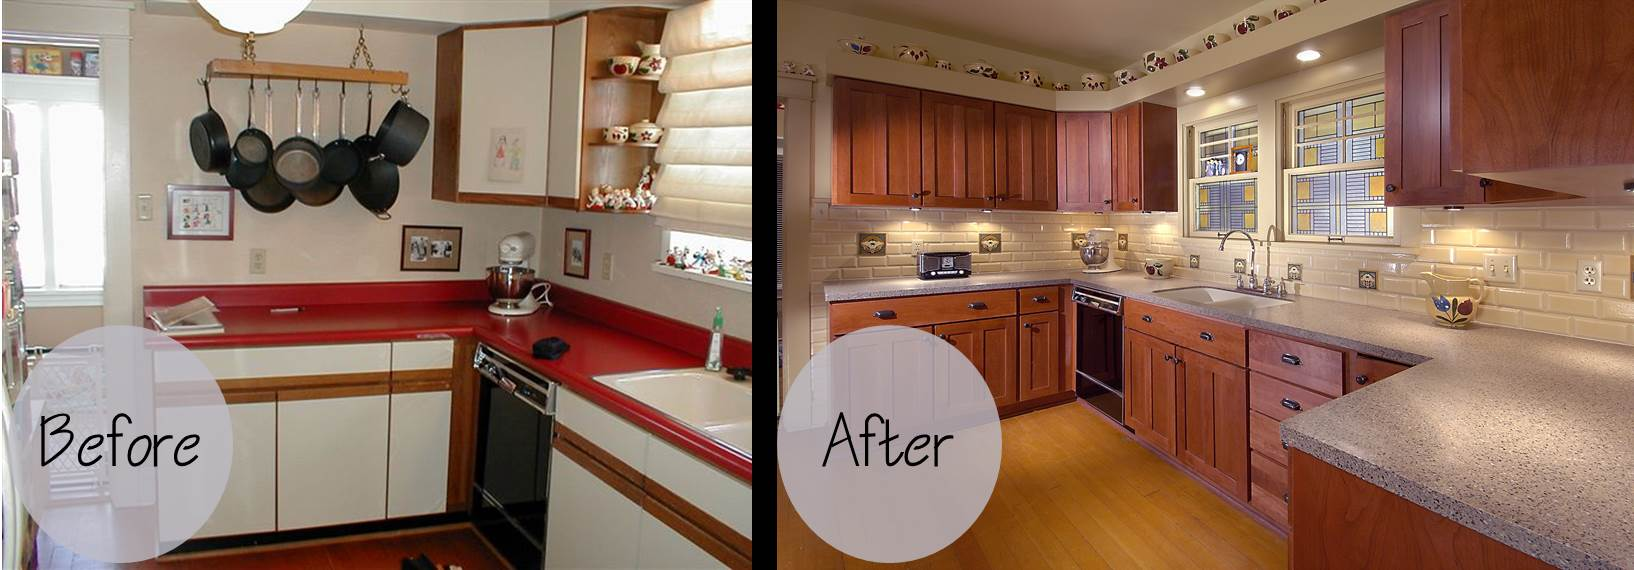 Lyon Kitchen Before And After.png